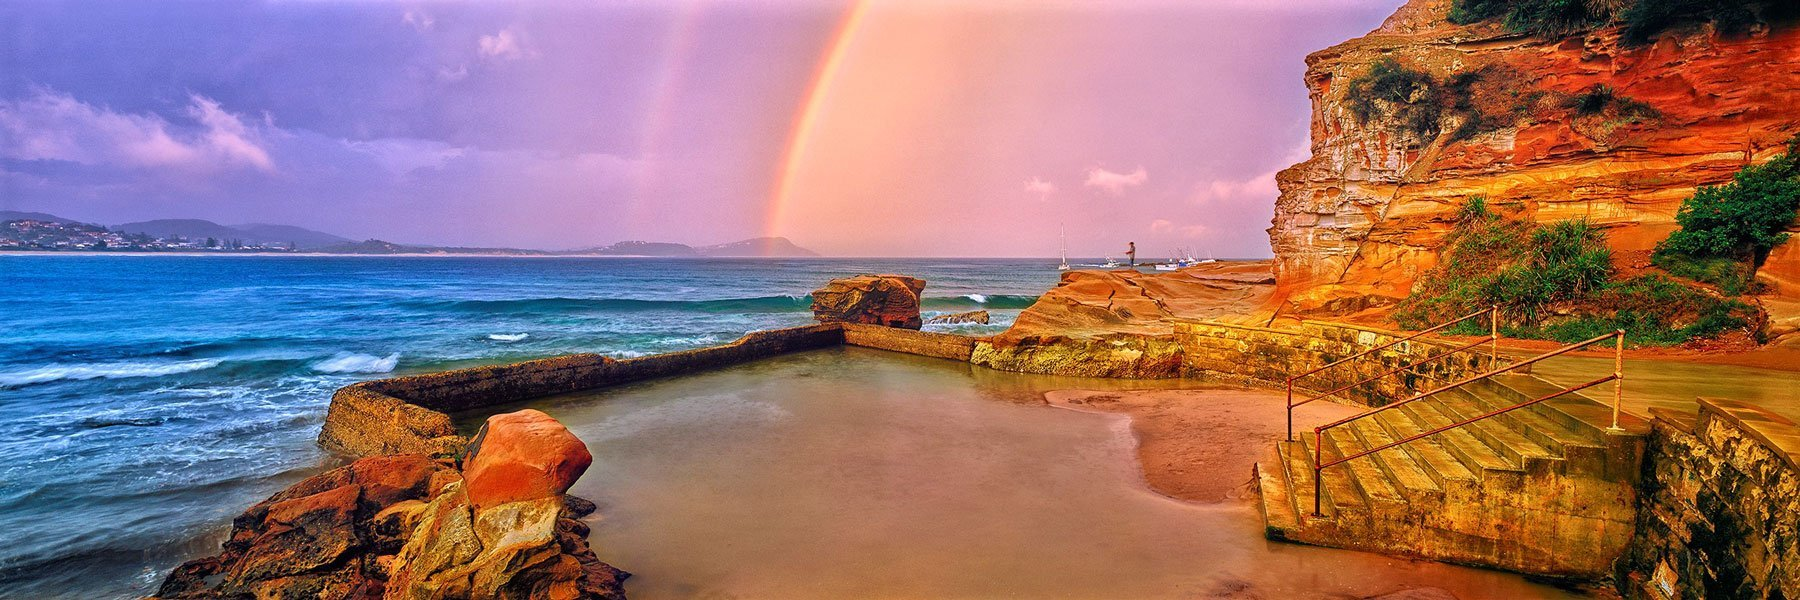 Rainbow after the storm at Terrigal Rock Pool, NSW, Australia